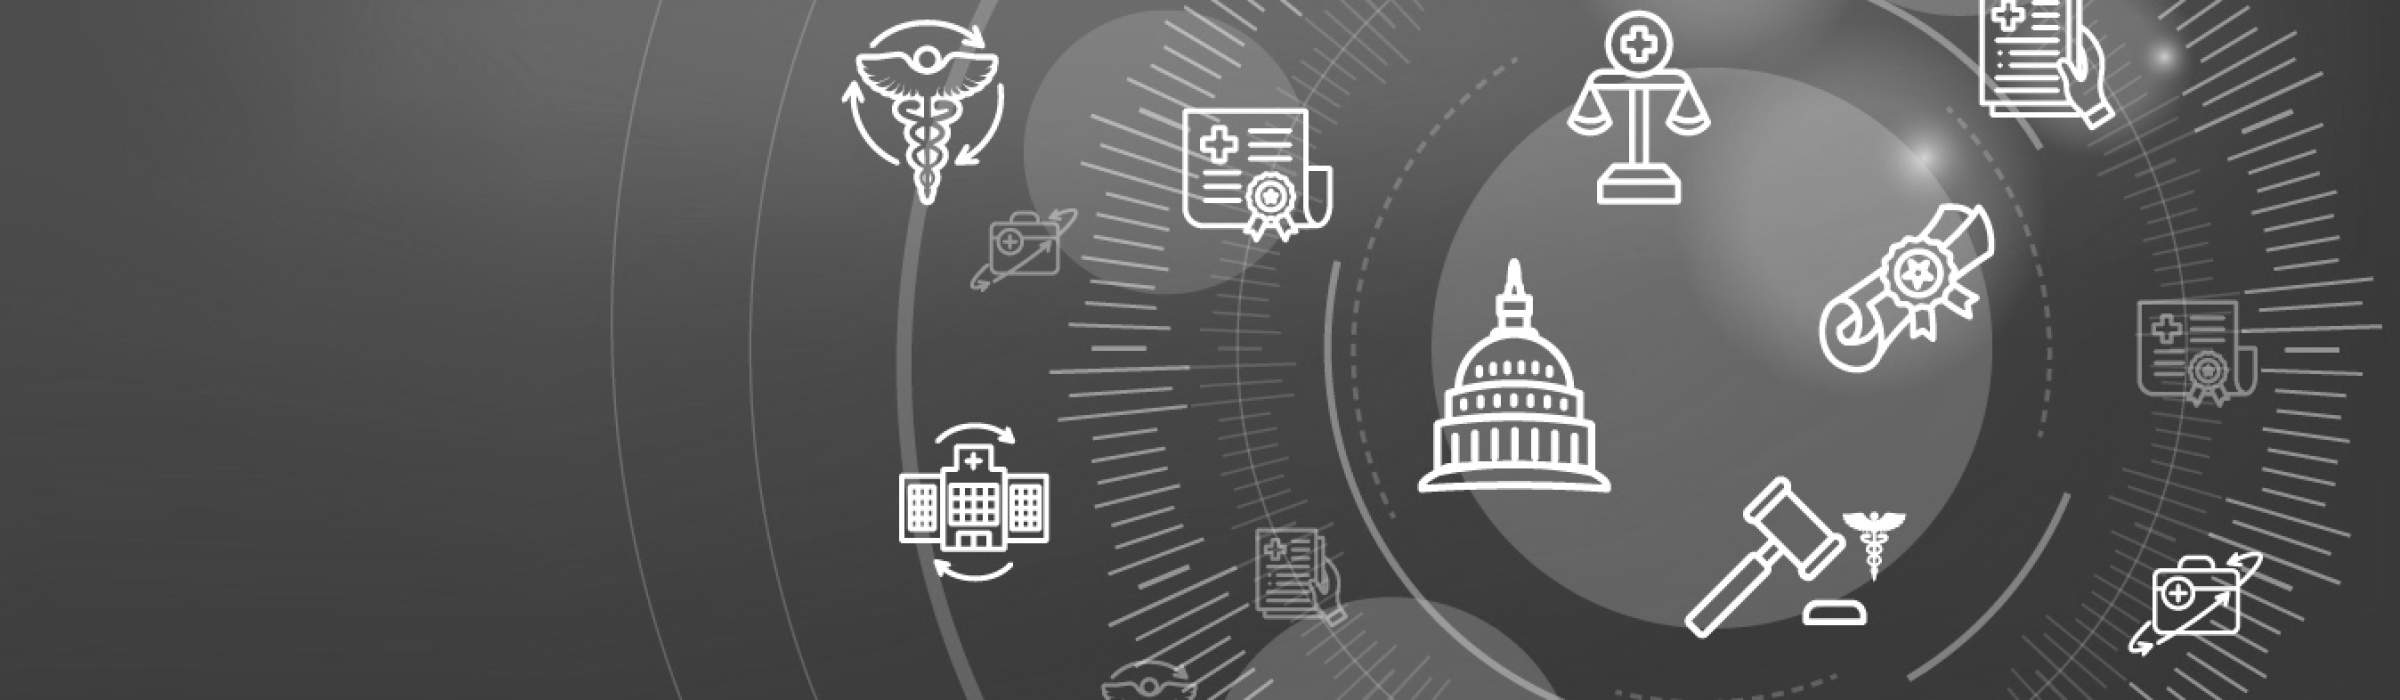 Health Laws and Legal icon set depicting various aspects of the legal system Web Header Banner